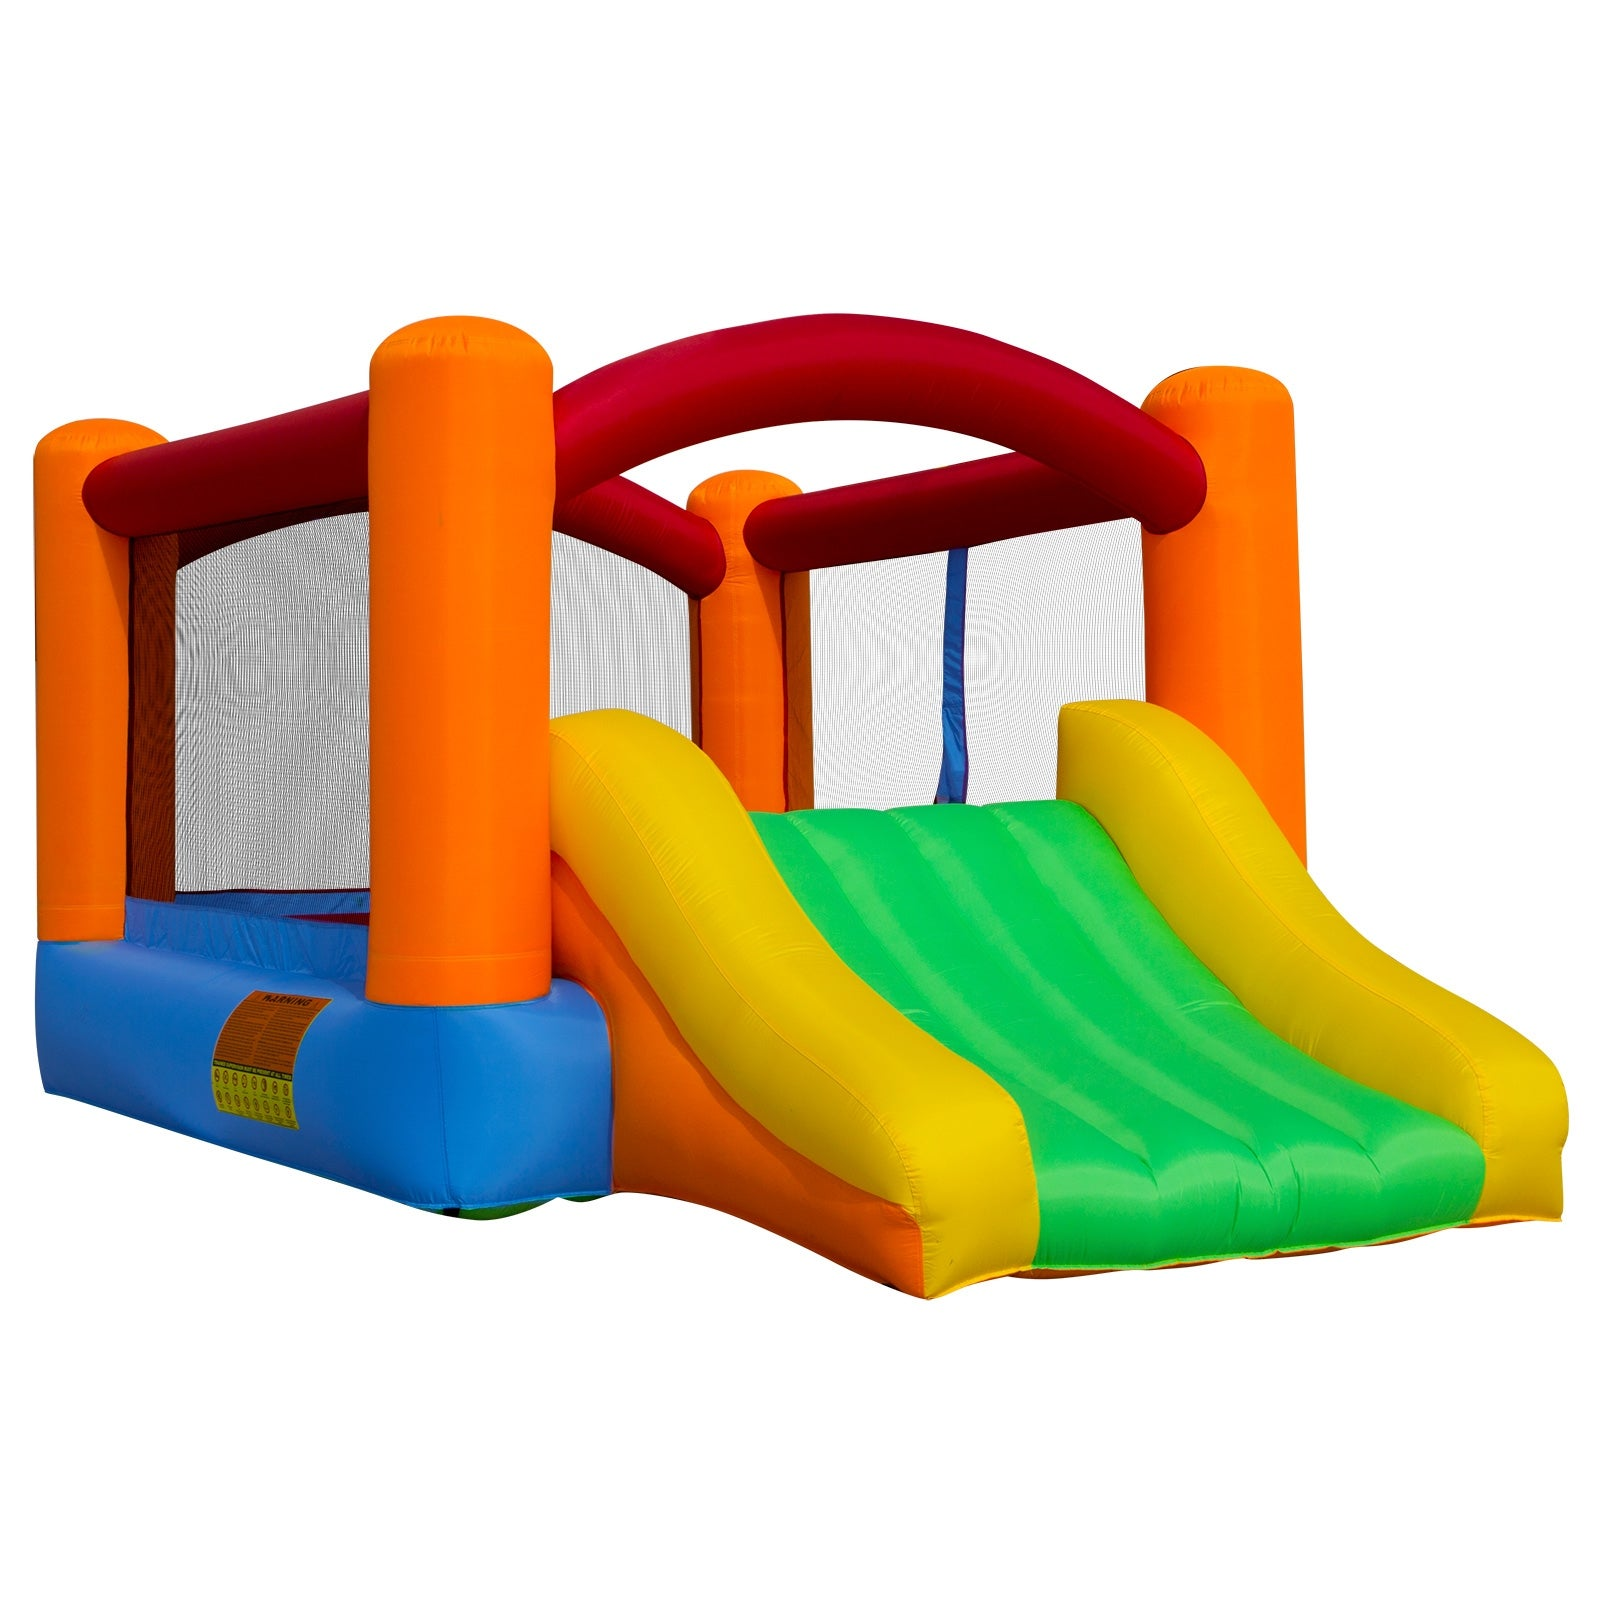 e3e0e9bfc Buy Inflatable Bounce Houses Online at Overstock